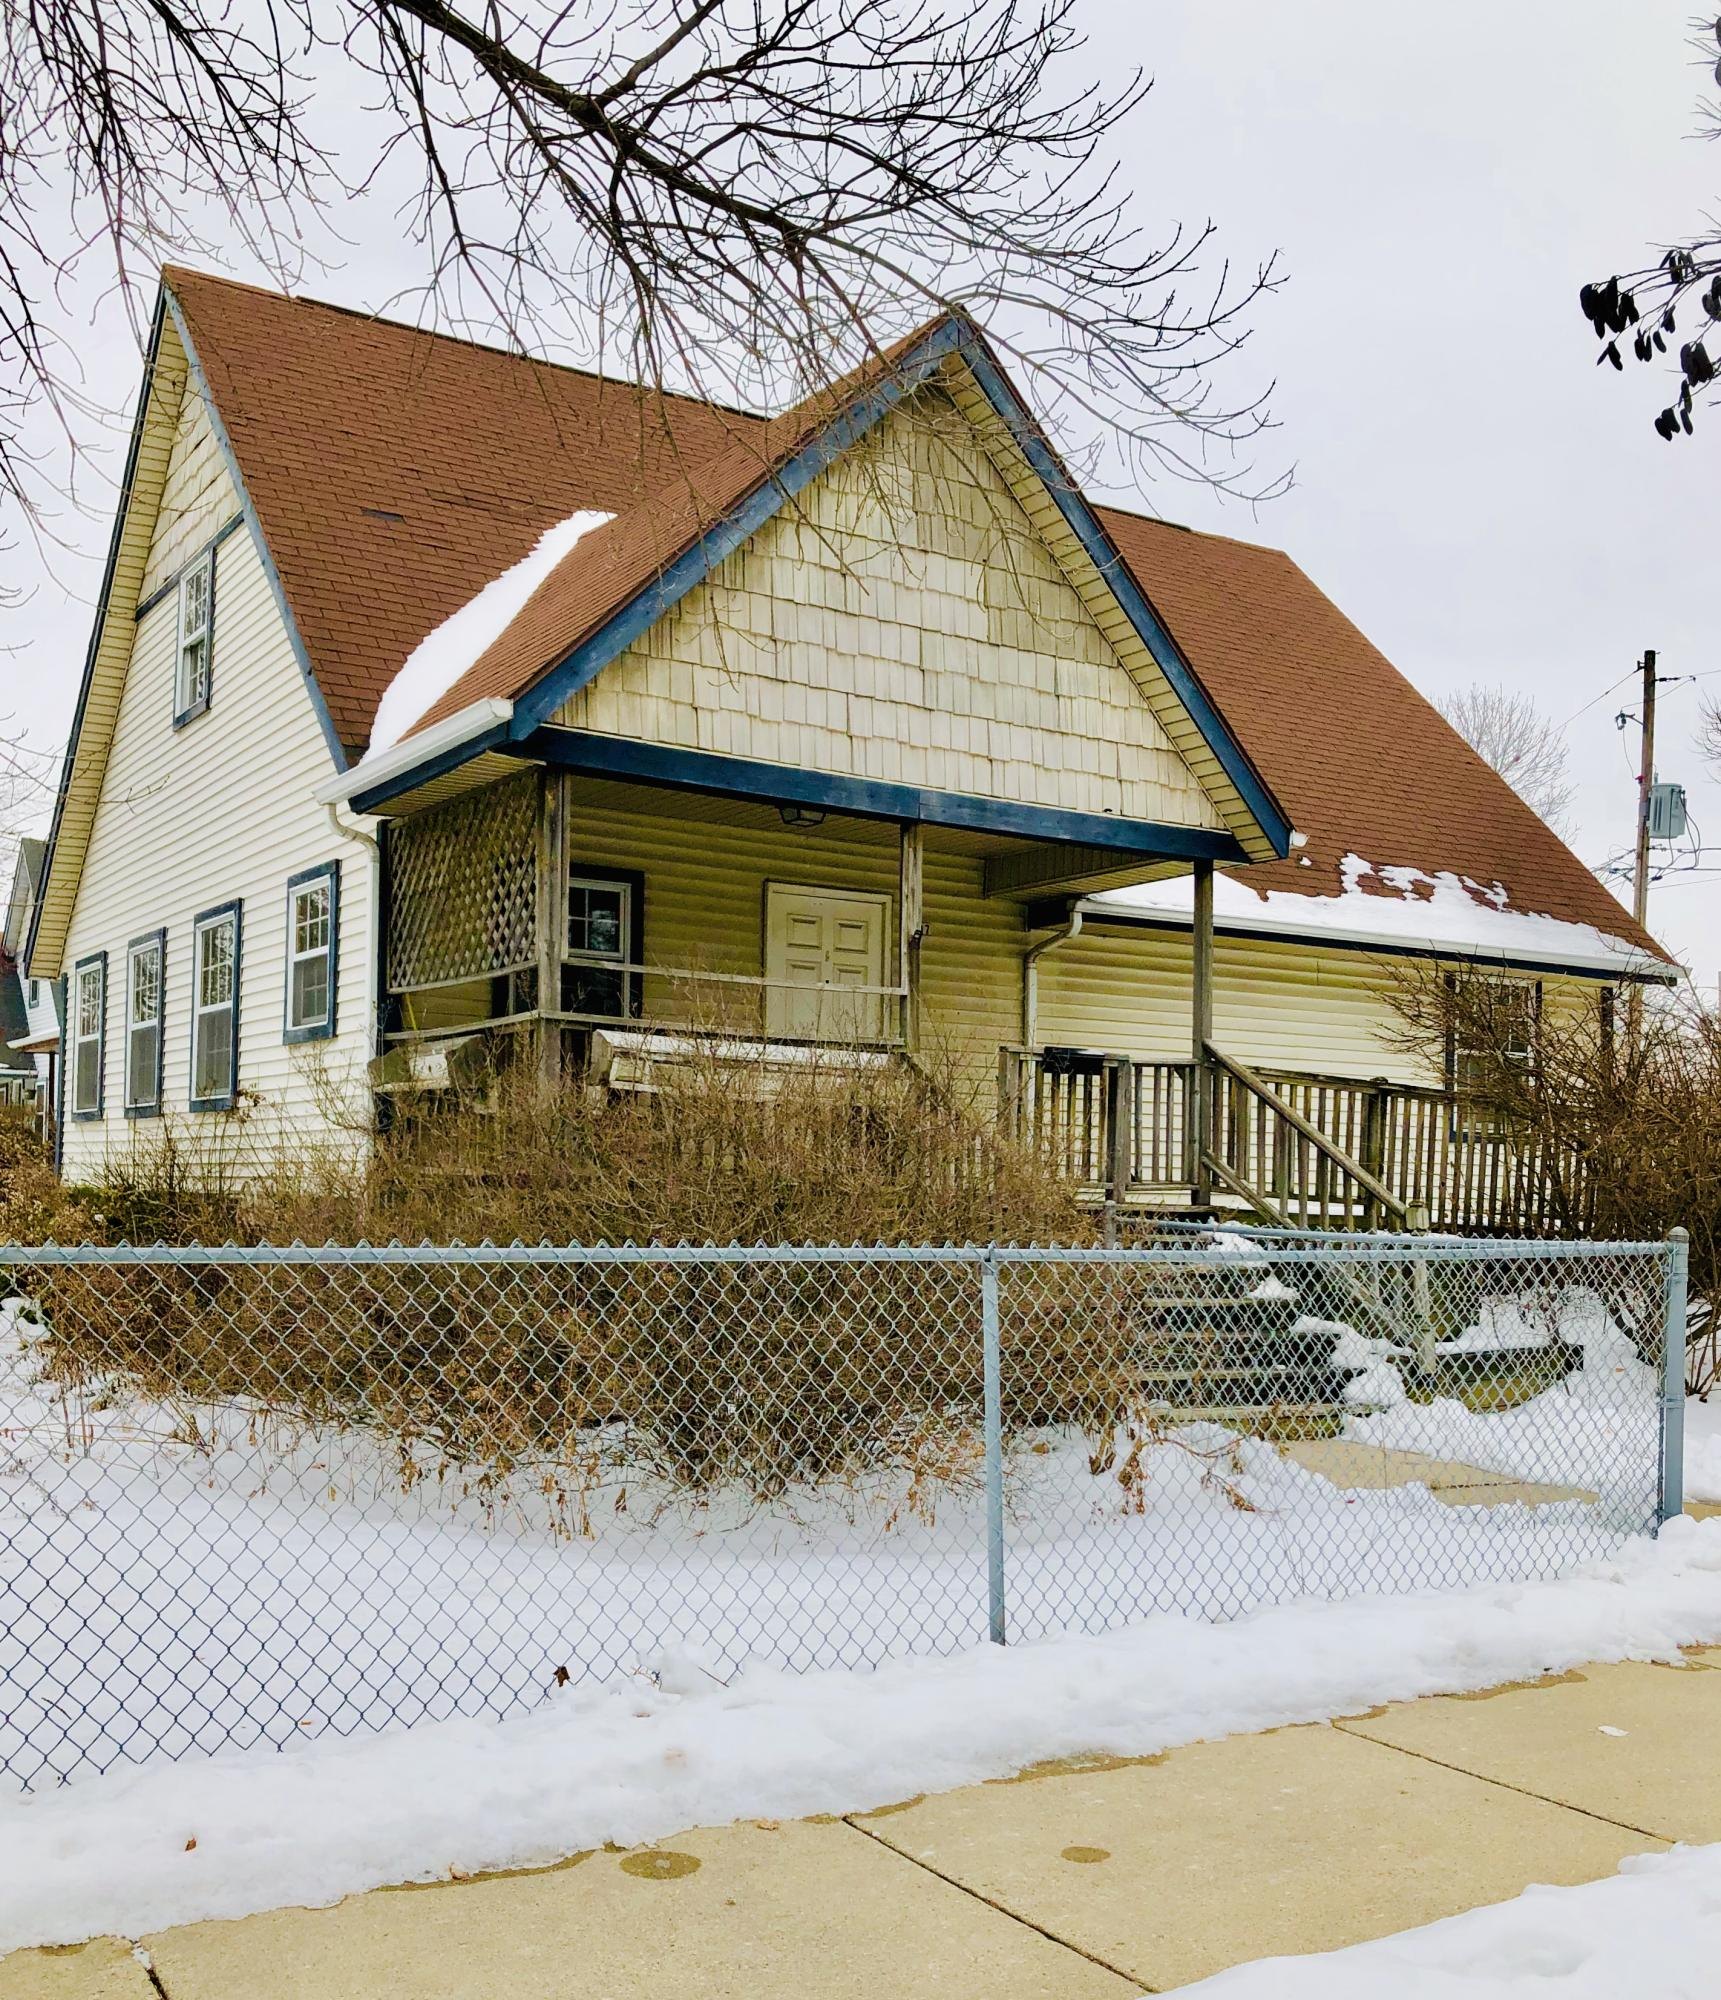 1707 23rd st, Milwaukee, Wisconsin 53205, 2 Bedrooms Bedrooms, ,1 BathroomBathrooms,Single-Family,For Sale,23rd st,1676969